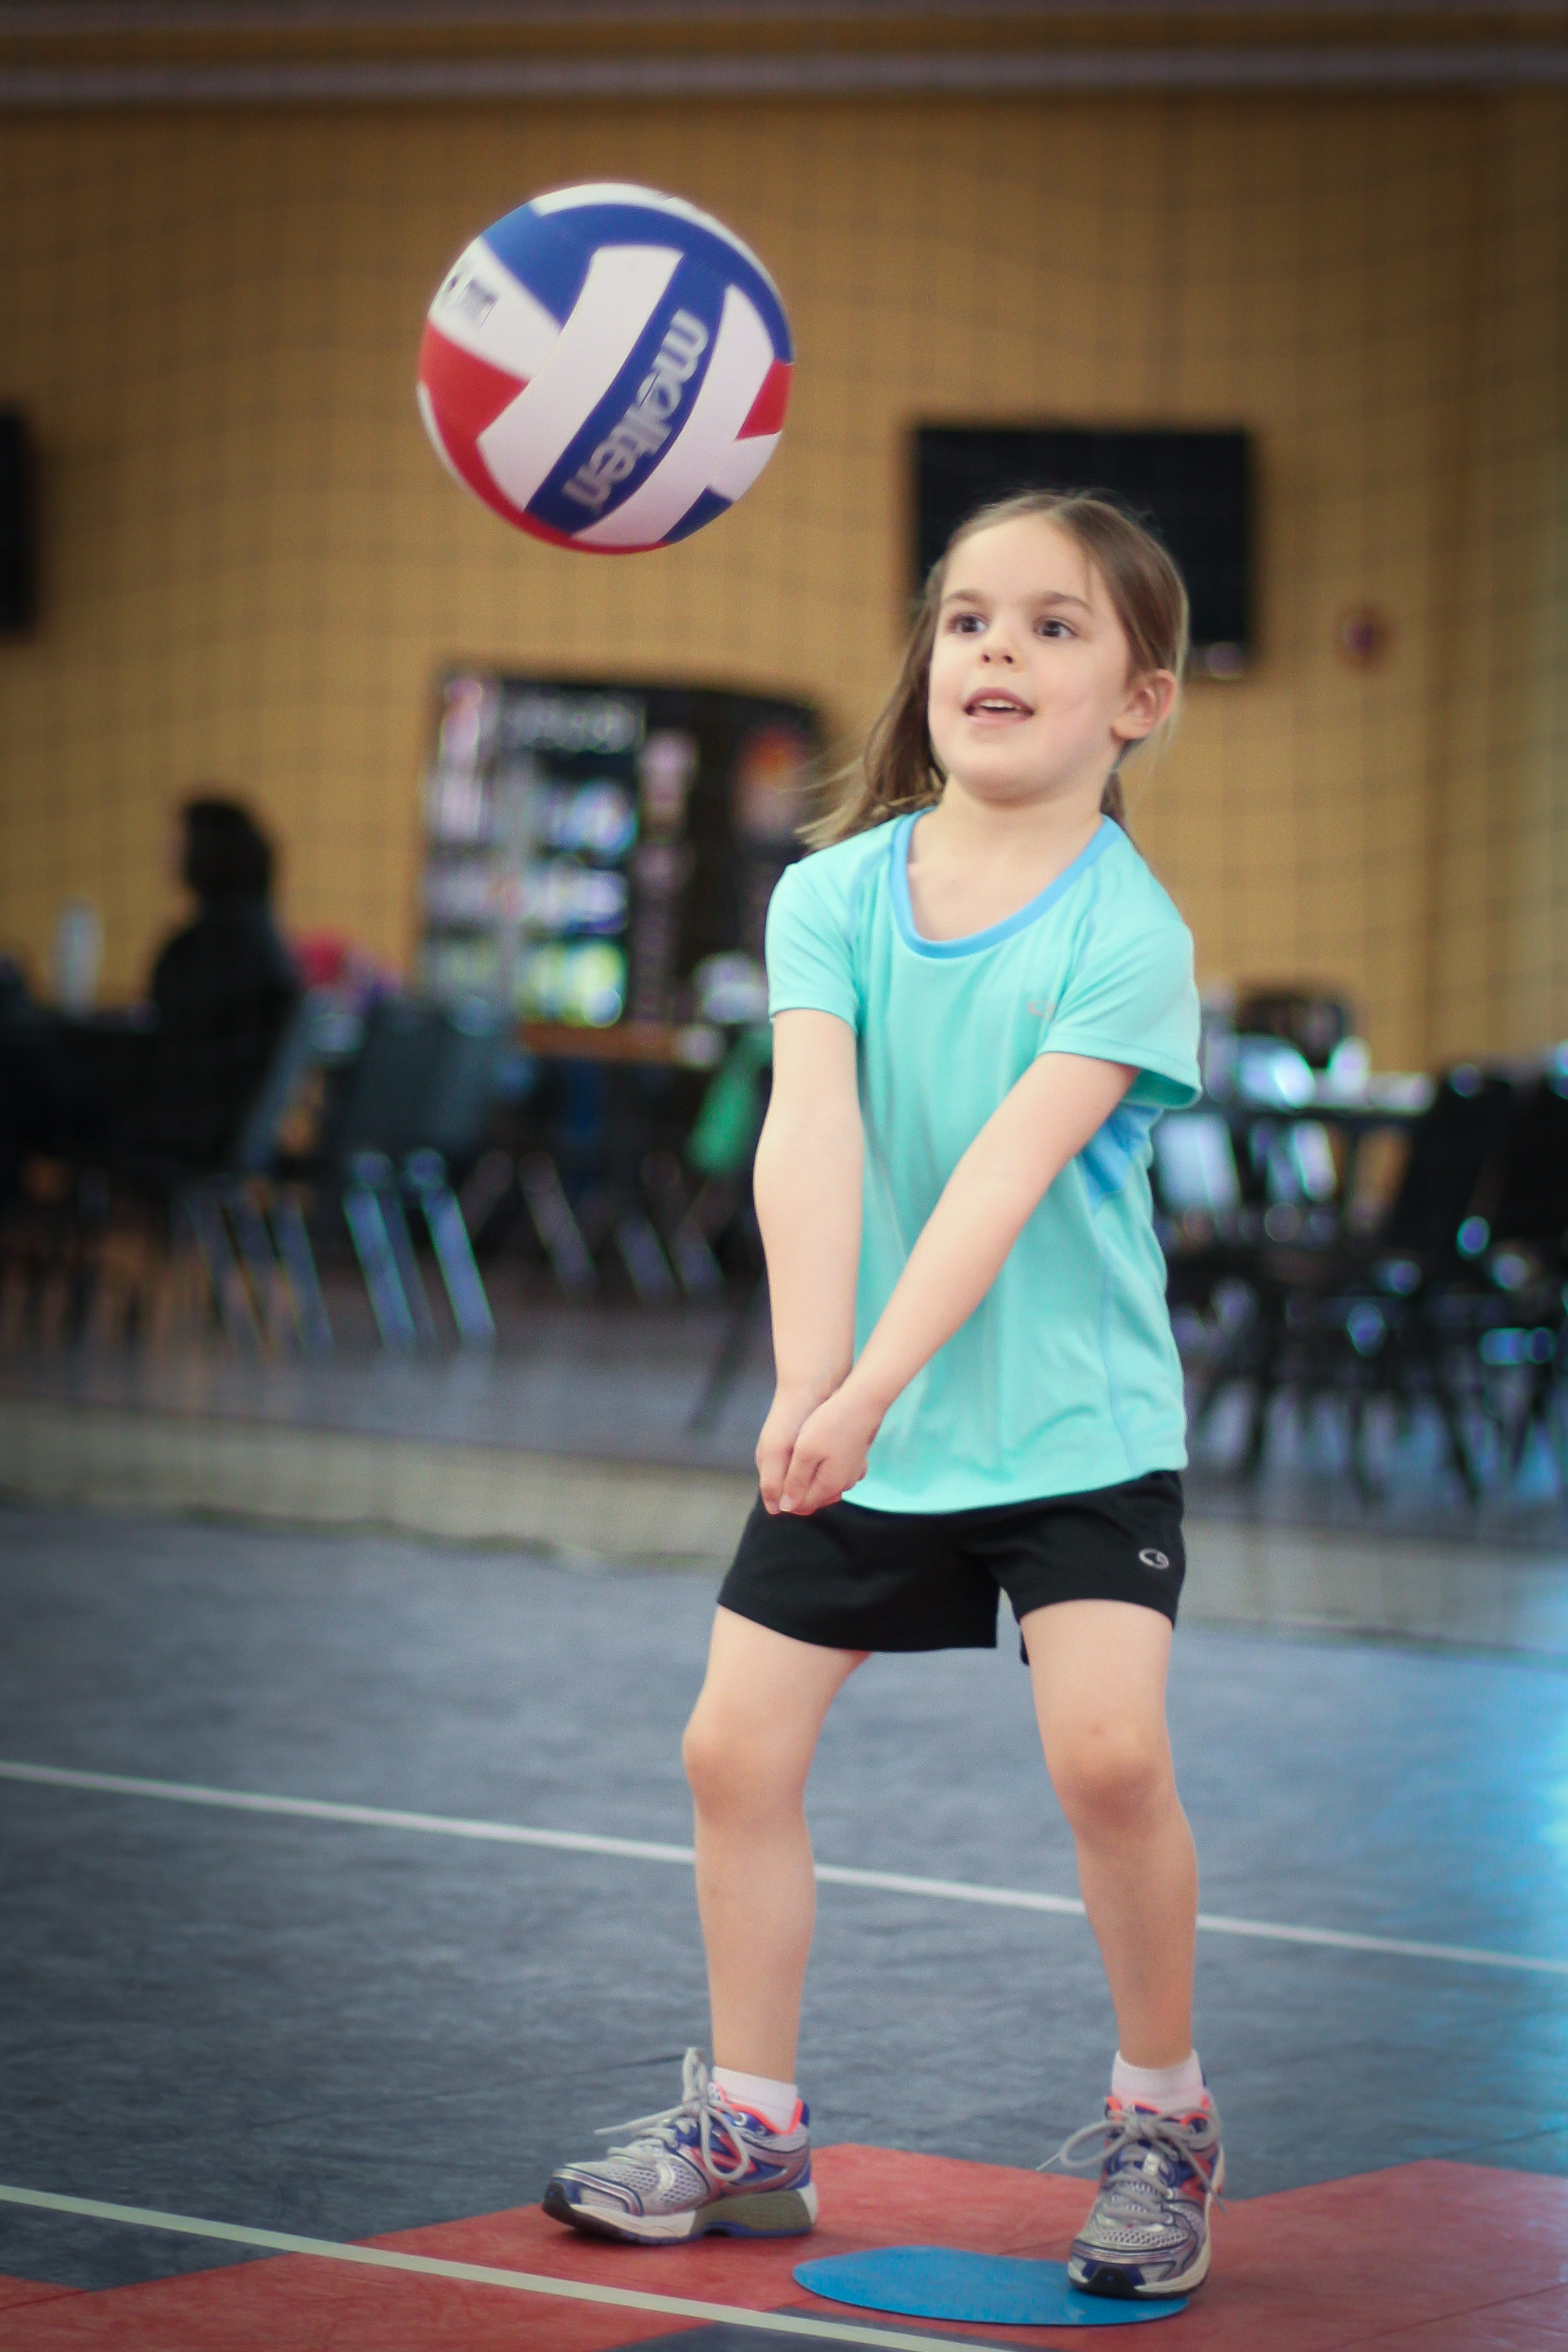 Preschooler passing a volleyball during Itsy Bitsy Spikers at Richmond Volleyball Club